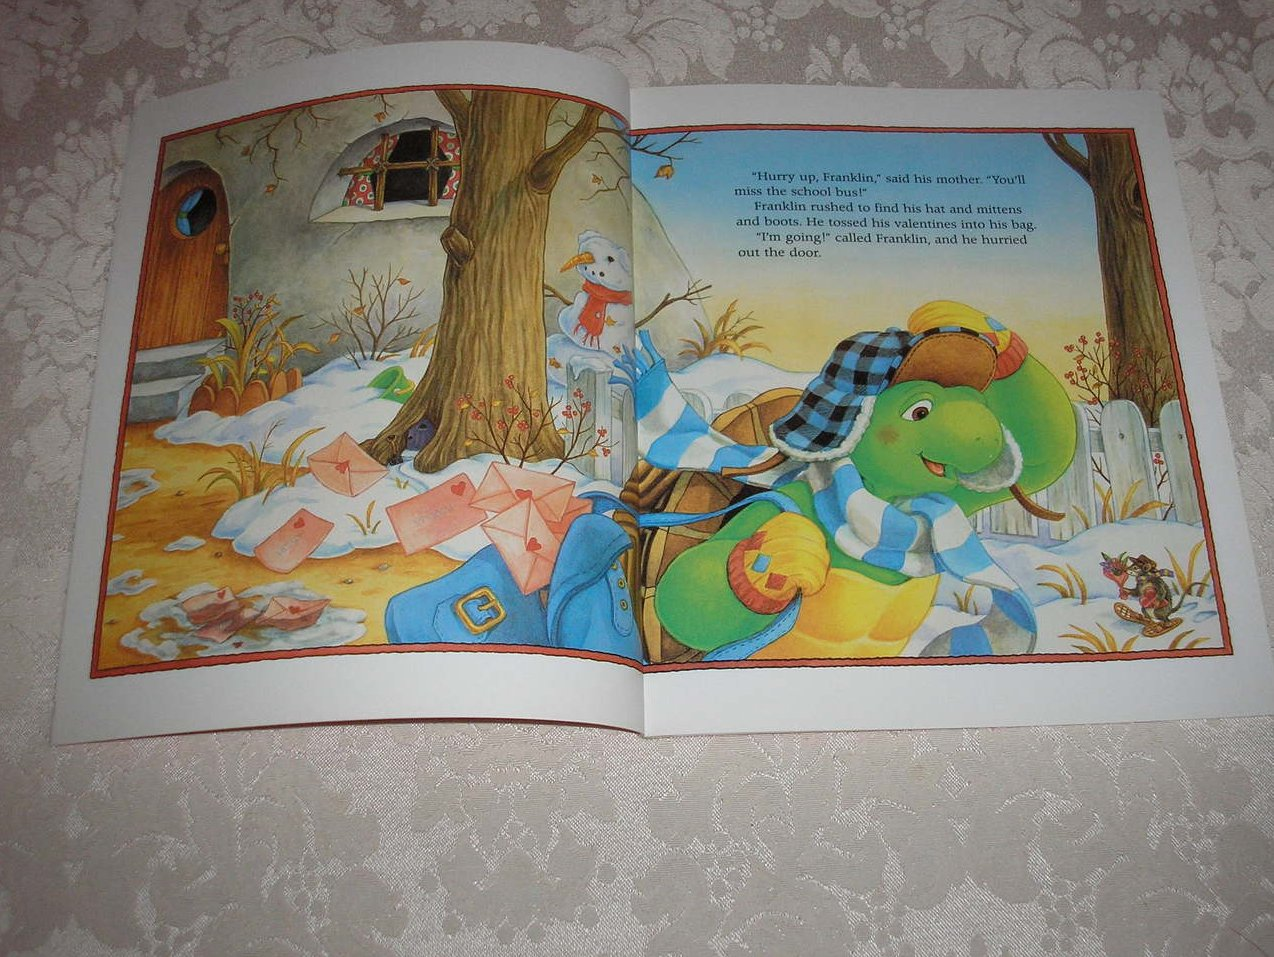 Image 3 of Franklin's Valentines Paulette Bourgeois Like New Softcover